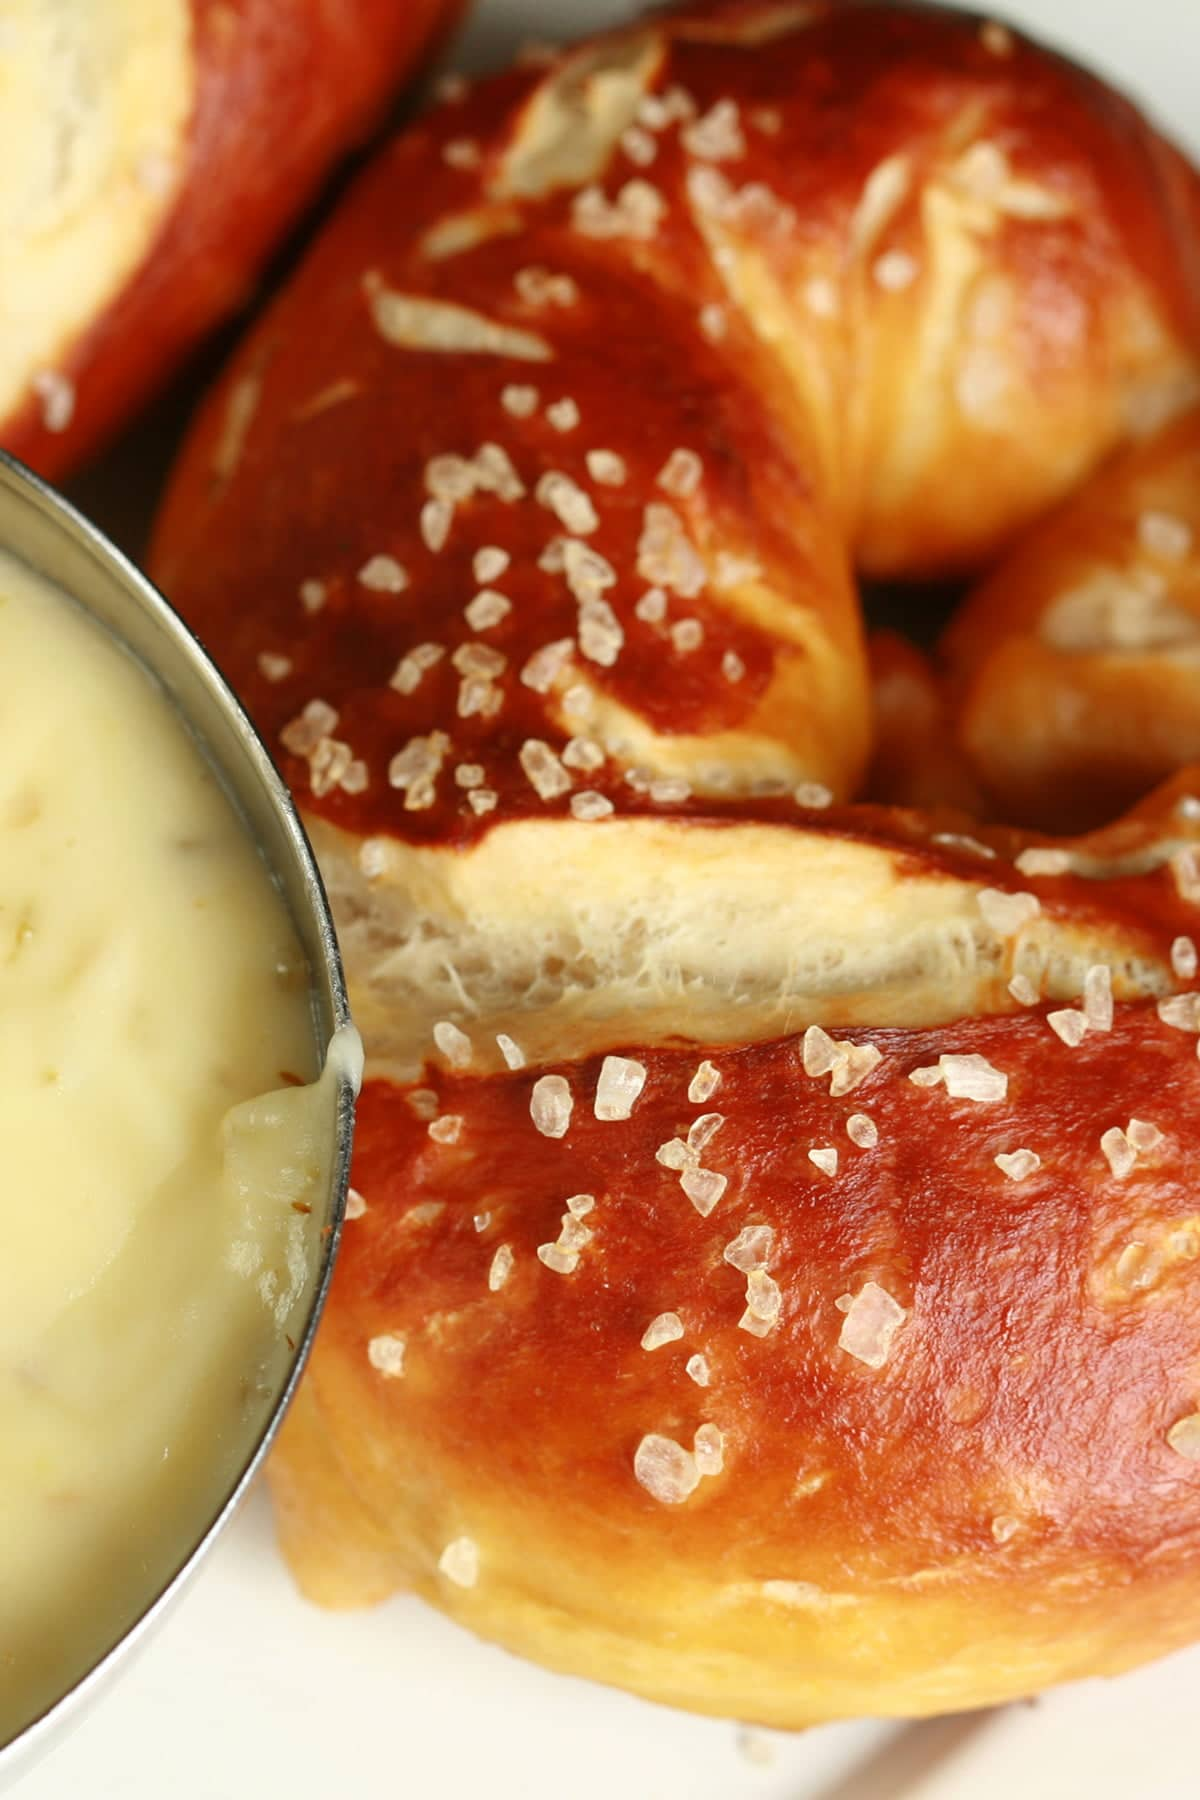 A very close up photo of a pretzel next to a bowl of jalapeno cheese dip.